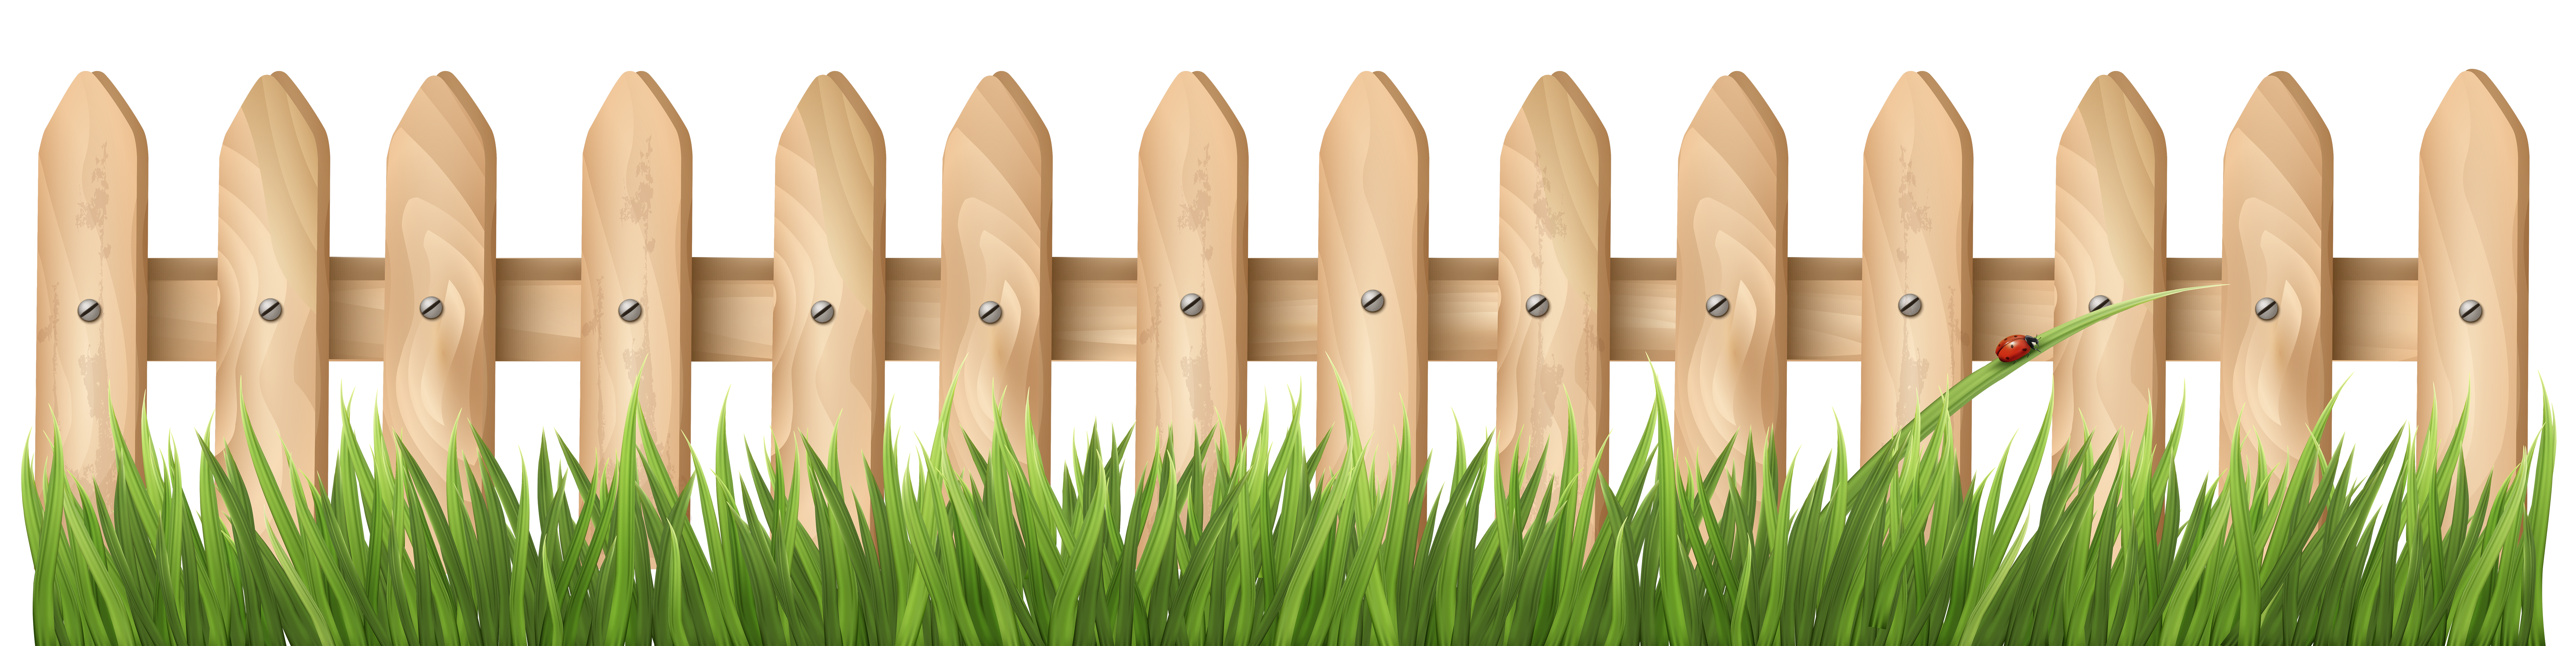 School fence clipart png royalty free 28+ Collection of Yellow Grass Clipart | High quality, free cliparts ... png royalty free